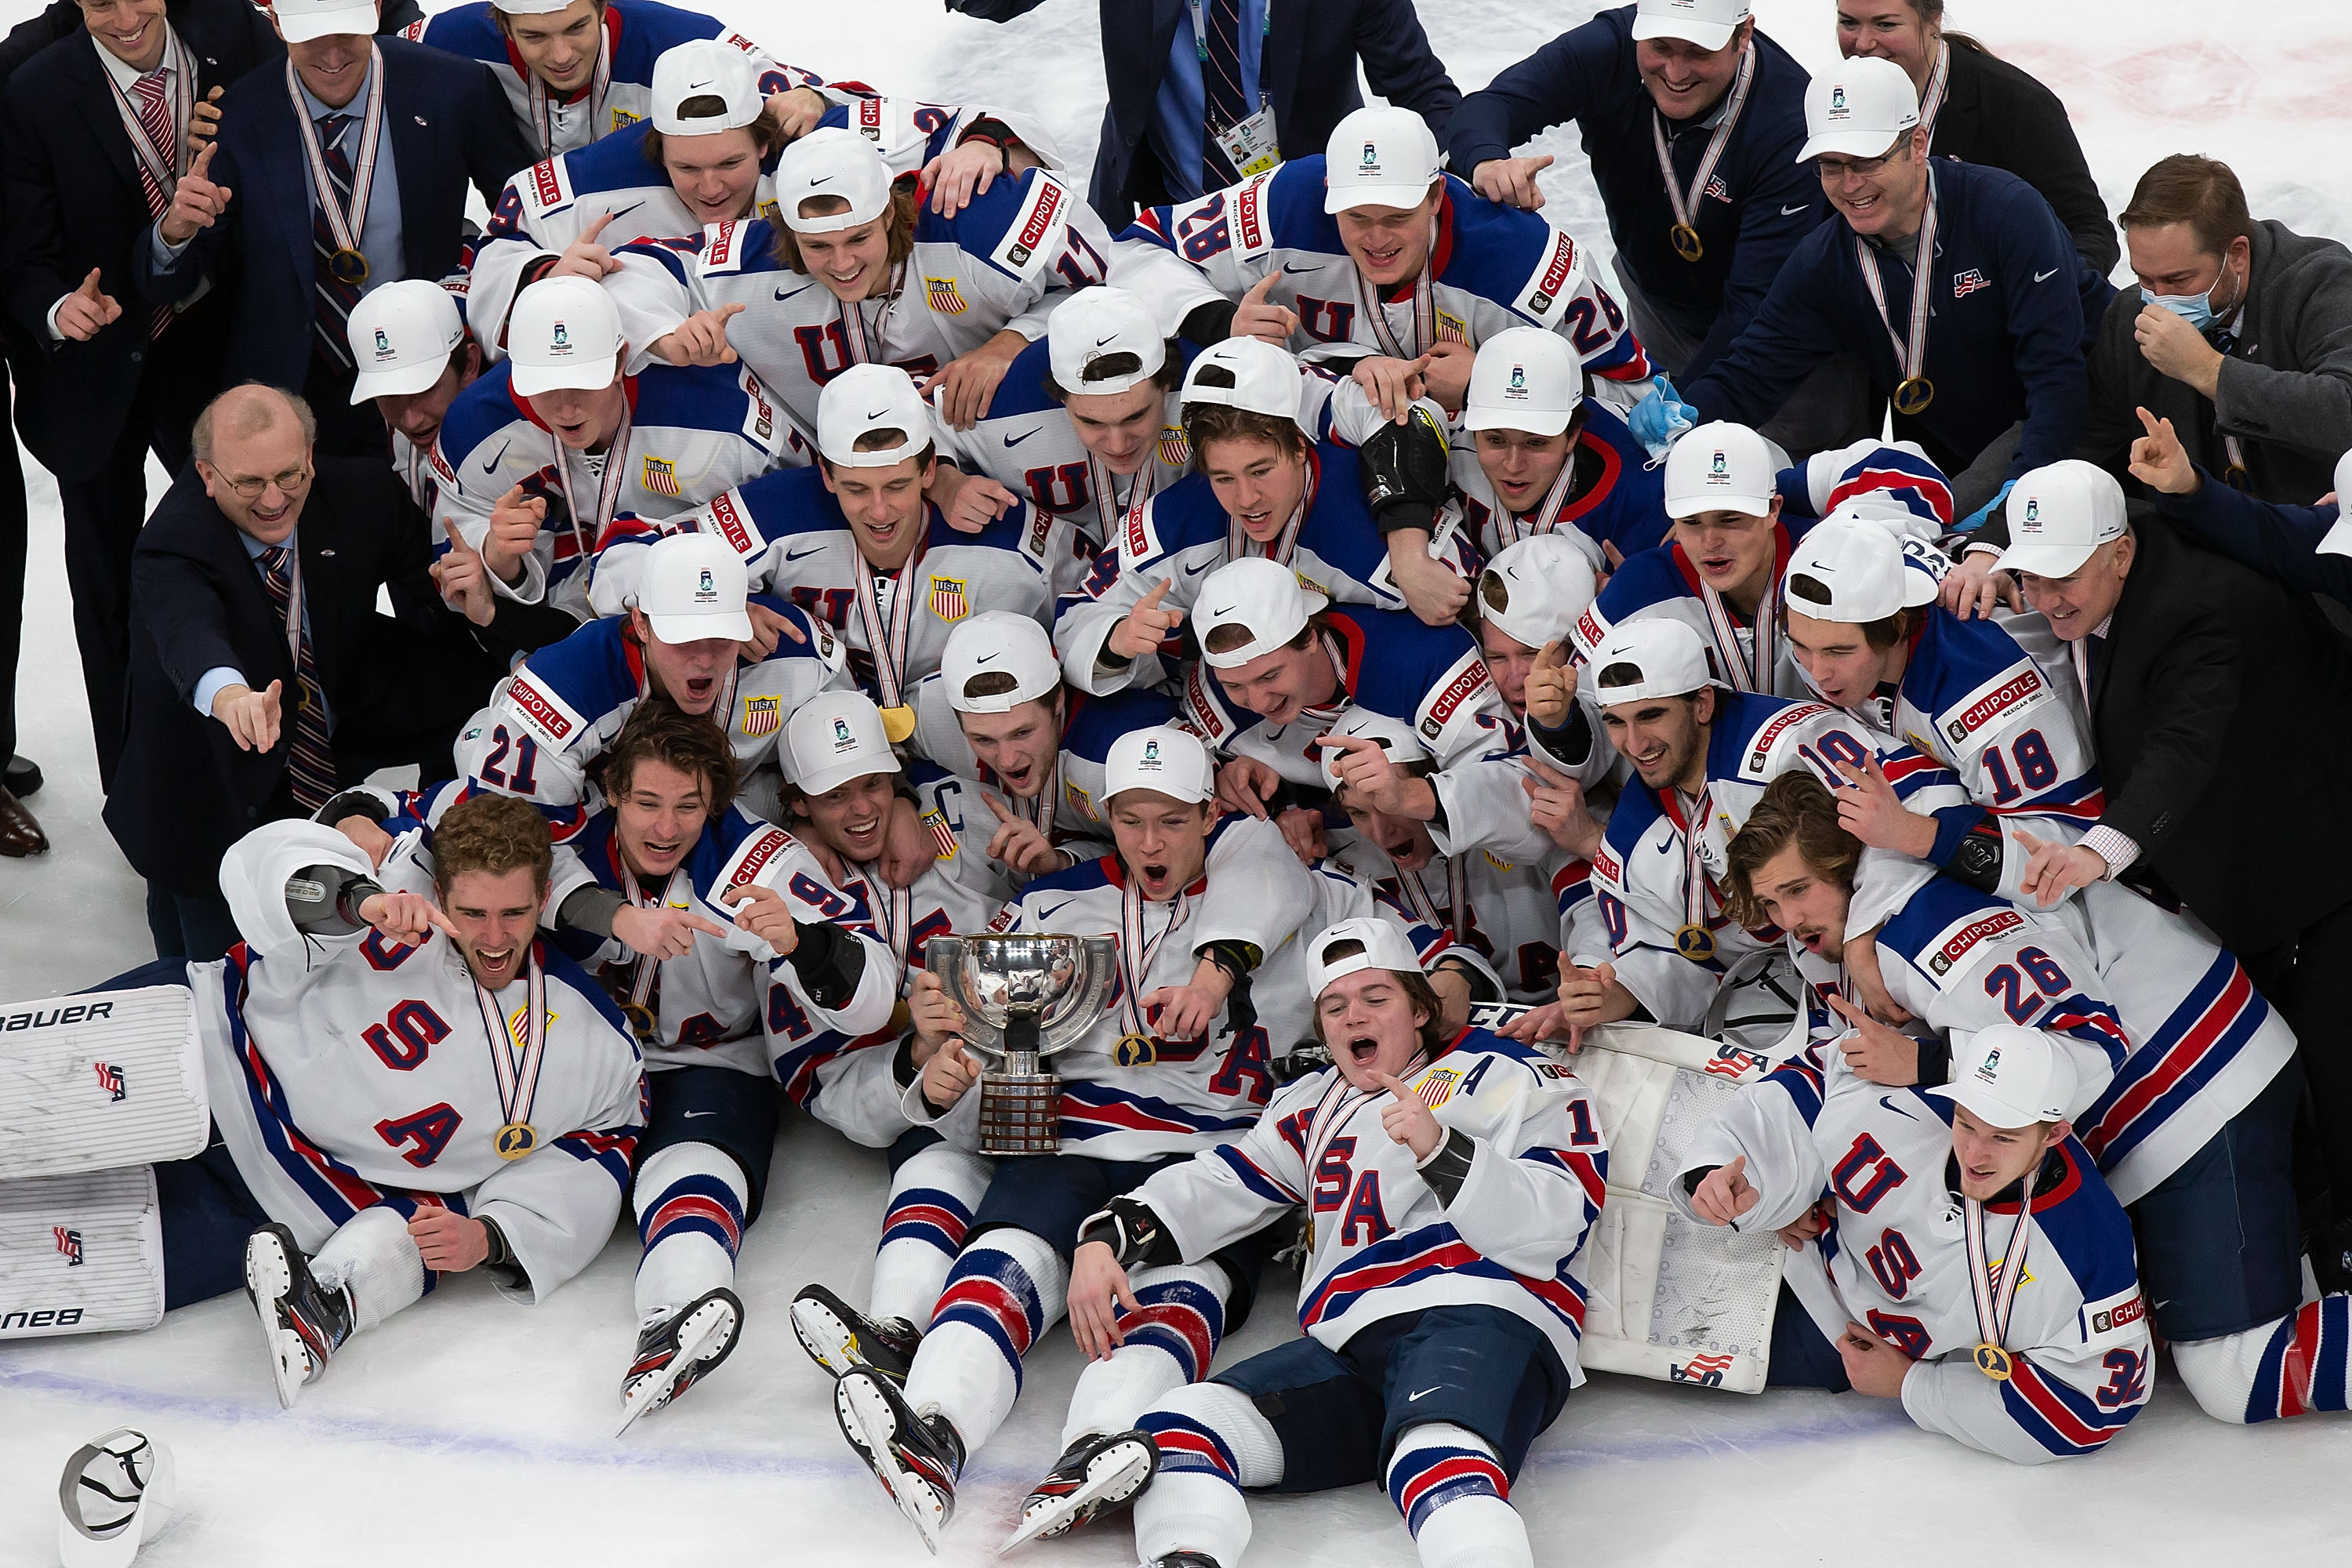 The United States team celebrates its victory over Canada during the 2021 IIHF World Junior Championship gold medal game at Rogers Place on January 5, 2021 in Edmonton, Canada.